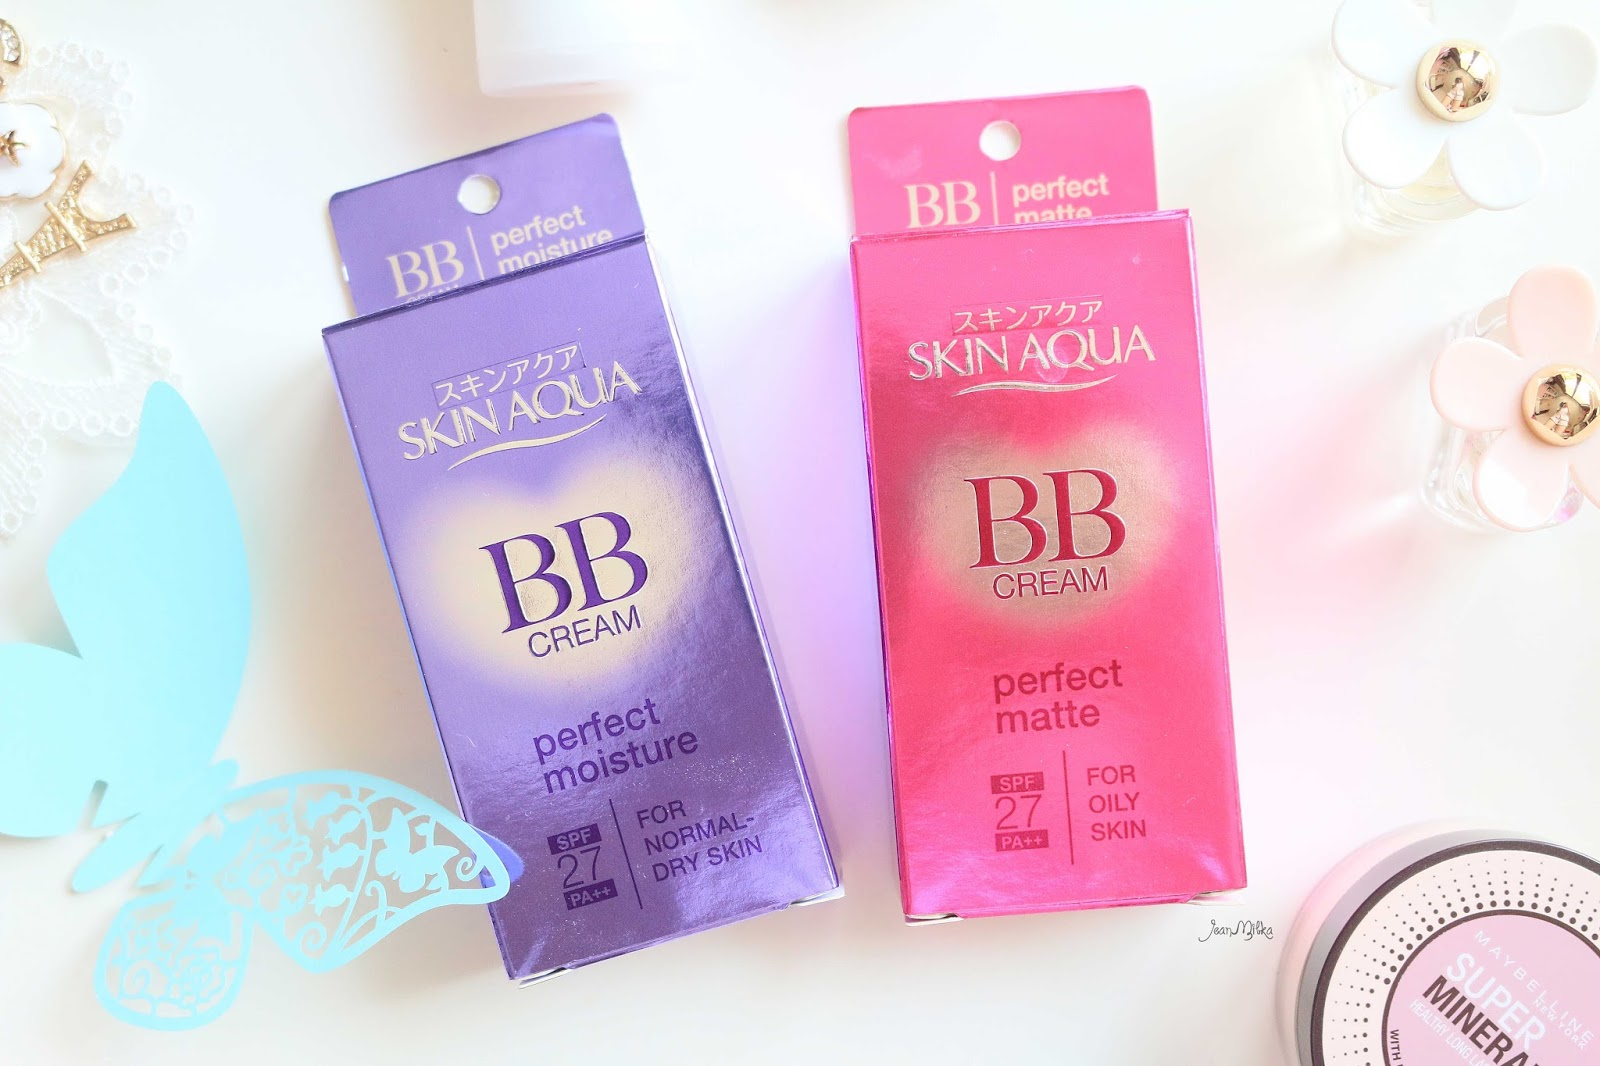 skin aqua, bb cream, makeup, review, japan, everyday, perfect matte, perfect mooisture